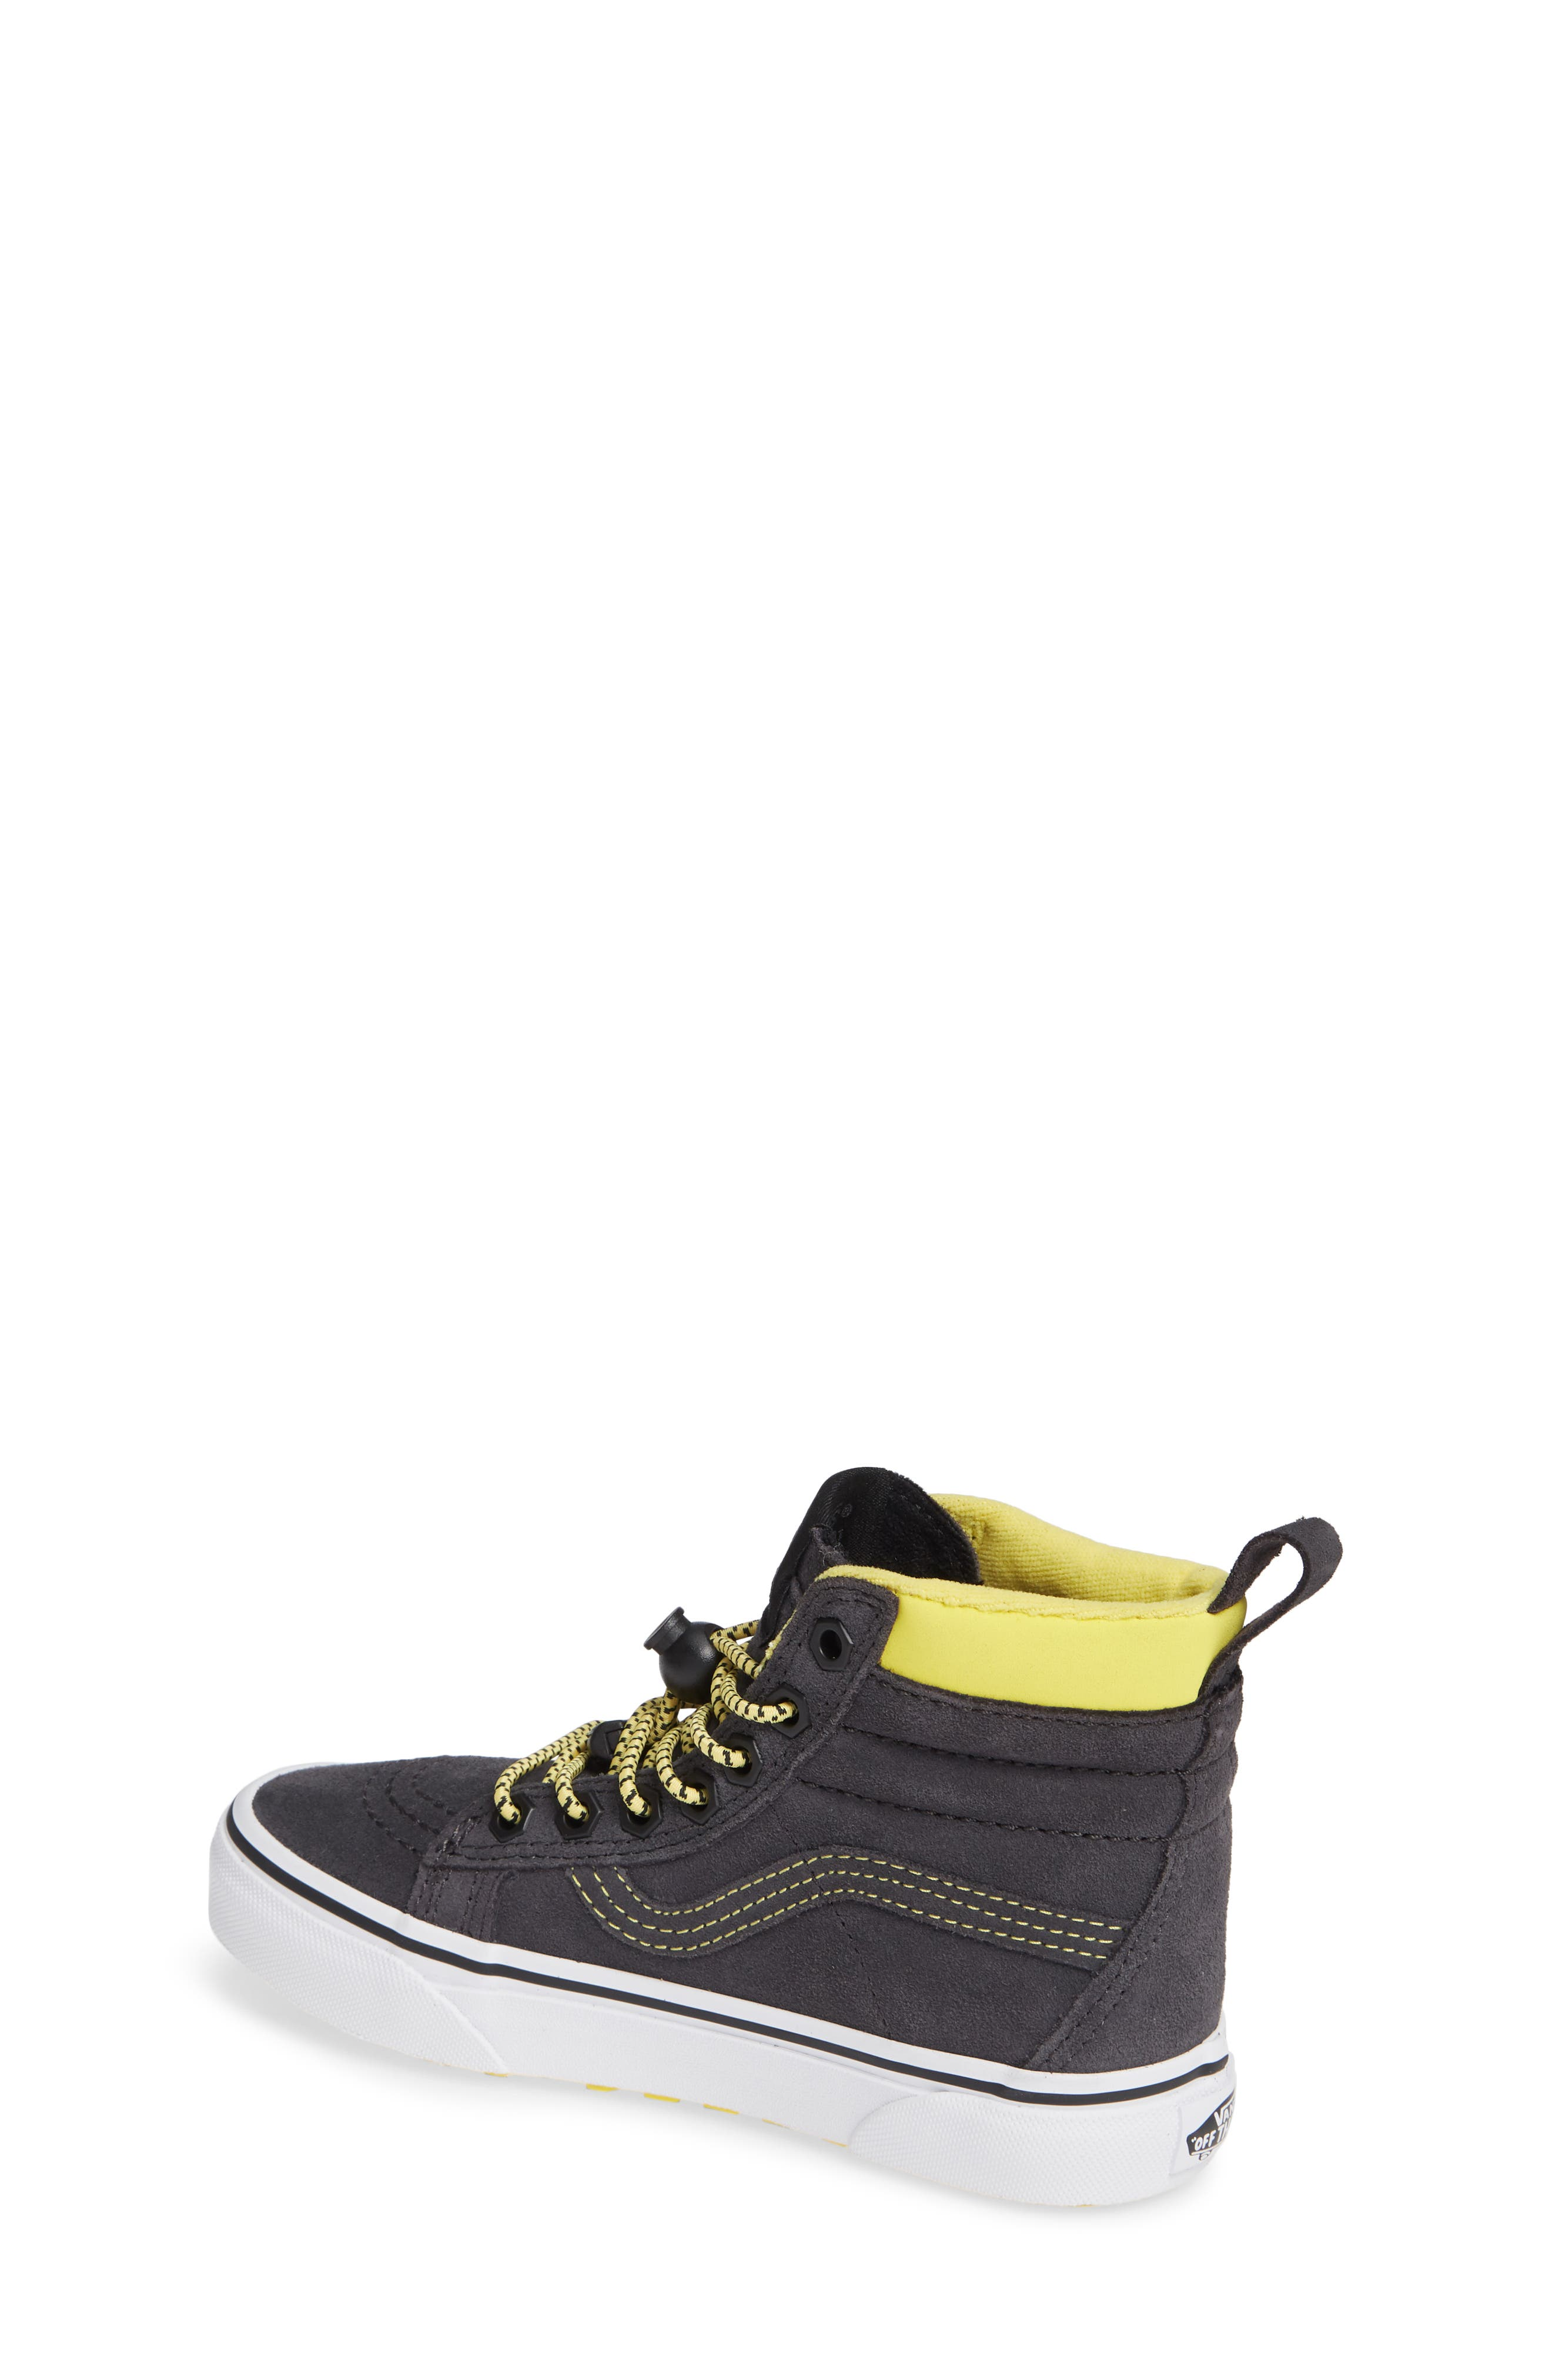 SK8-Hi Sneaker,                             Alternate thumbnail 16, color,